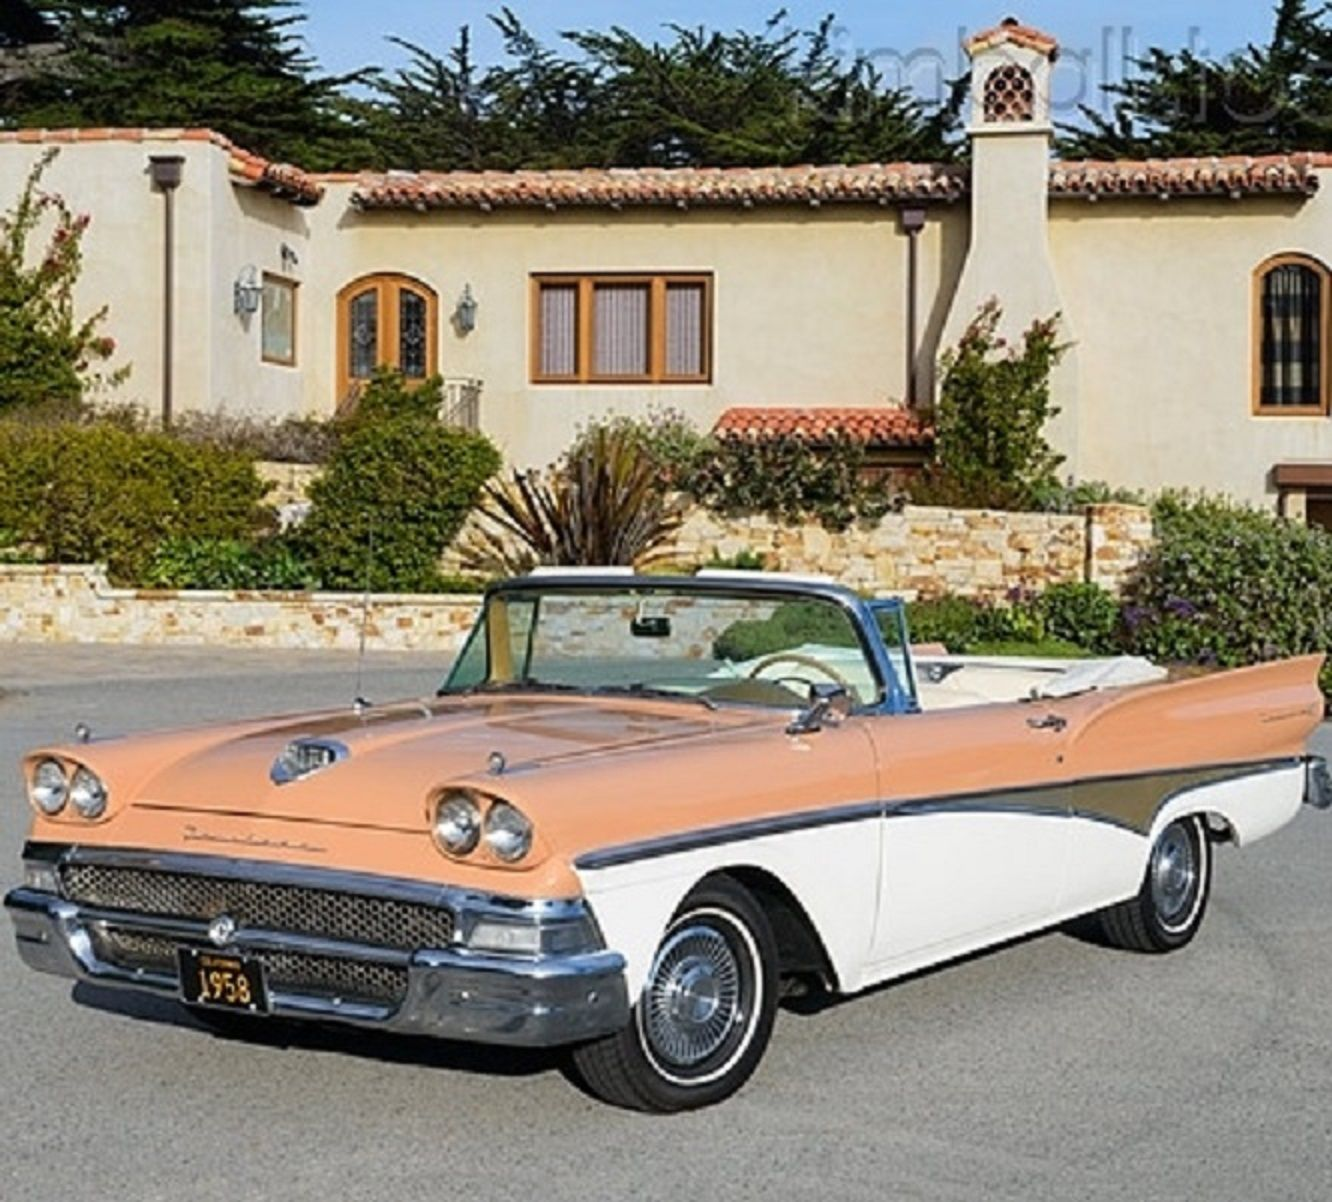 1958 ford fairlane 500 skyliner classic cars and trucks pinterest ford fairlane ford and cars